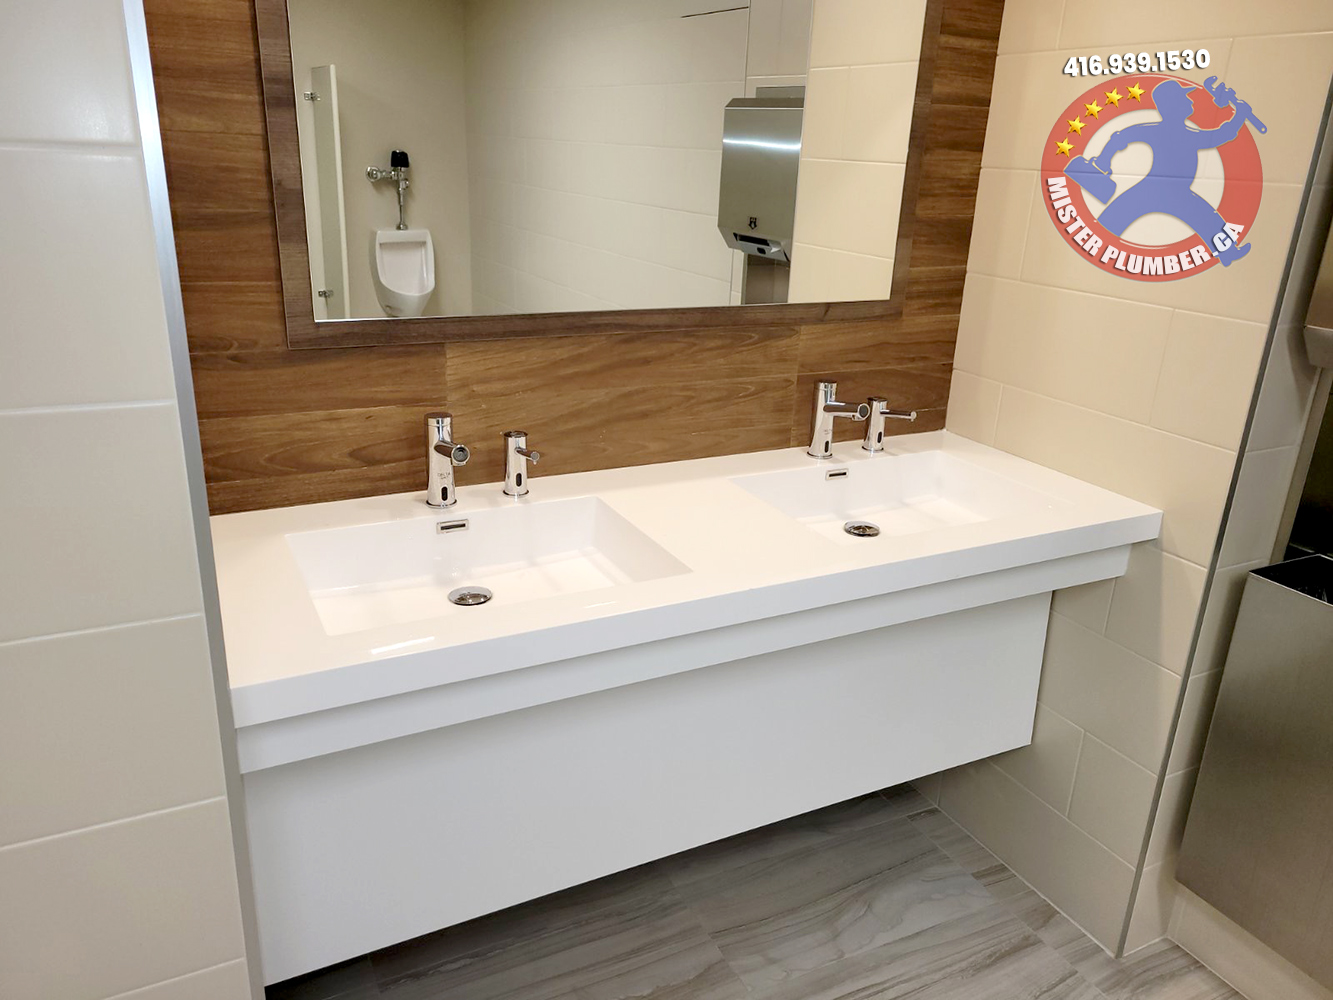 Professional plumbing service by Mister Plumber